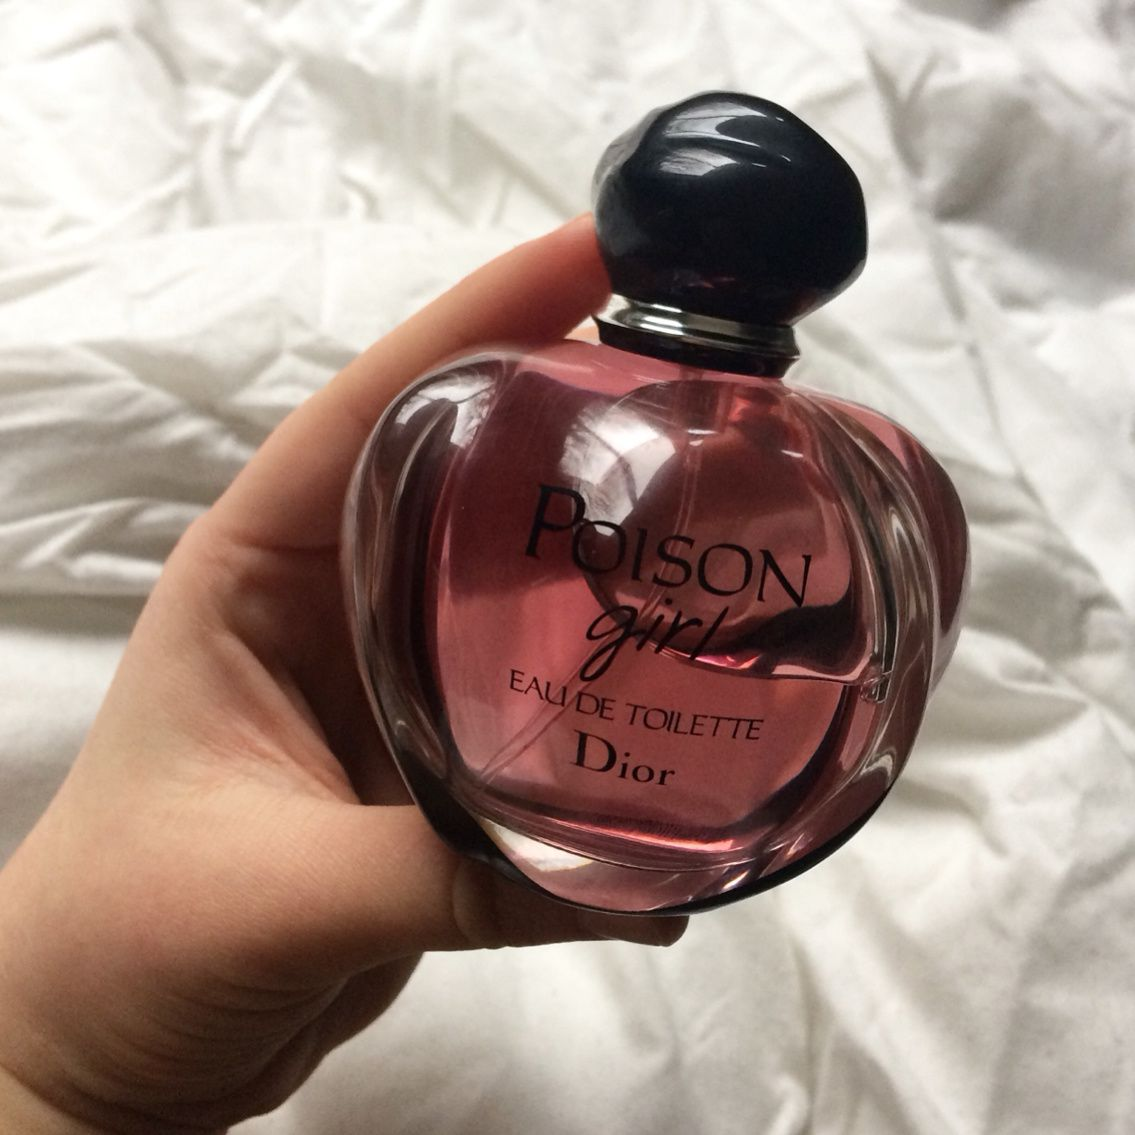 Poison Girl by Dior